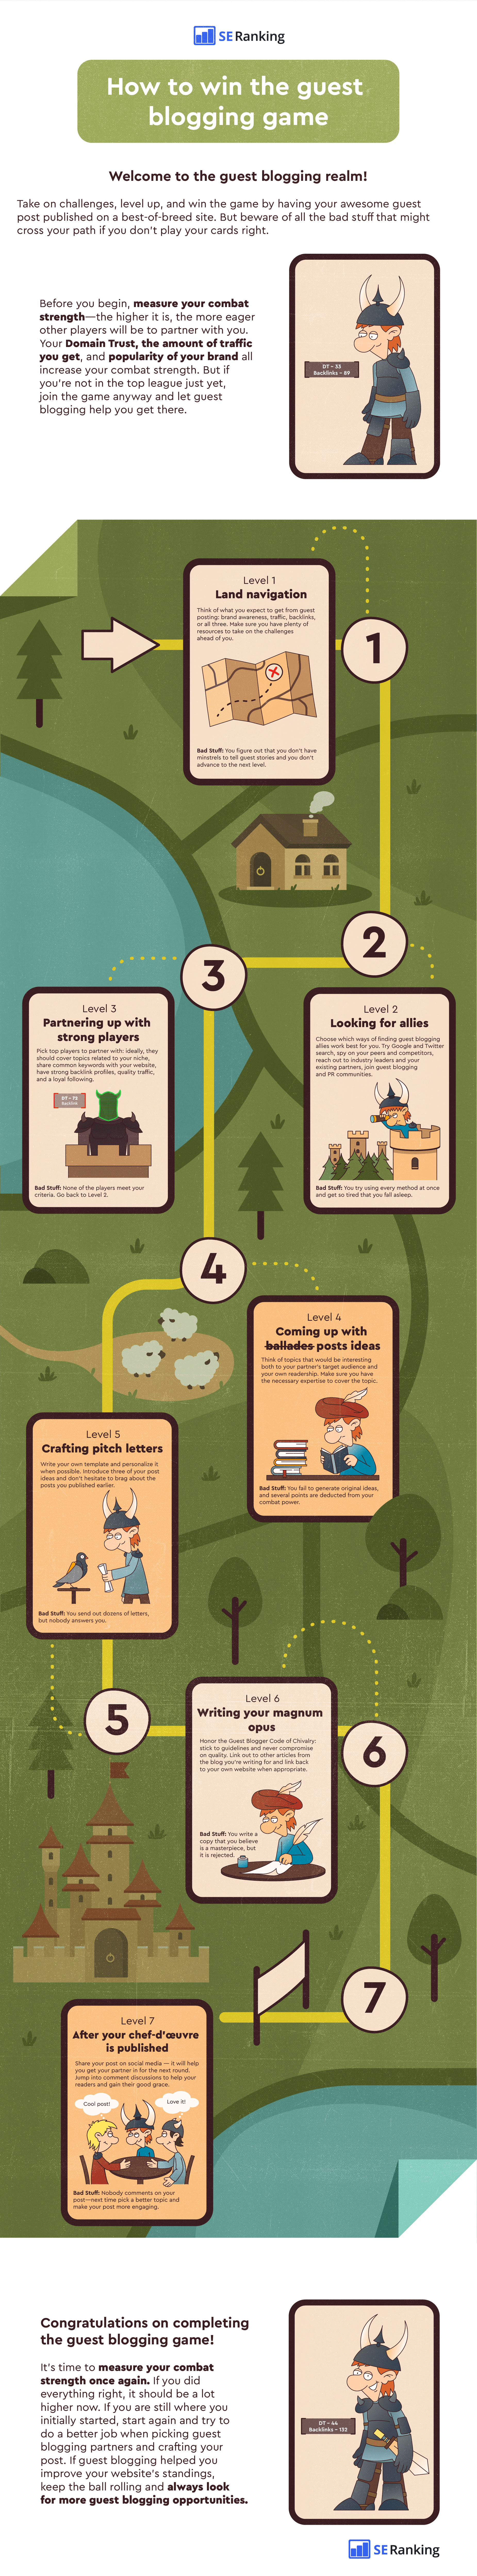 Guest posting infographic